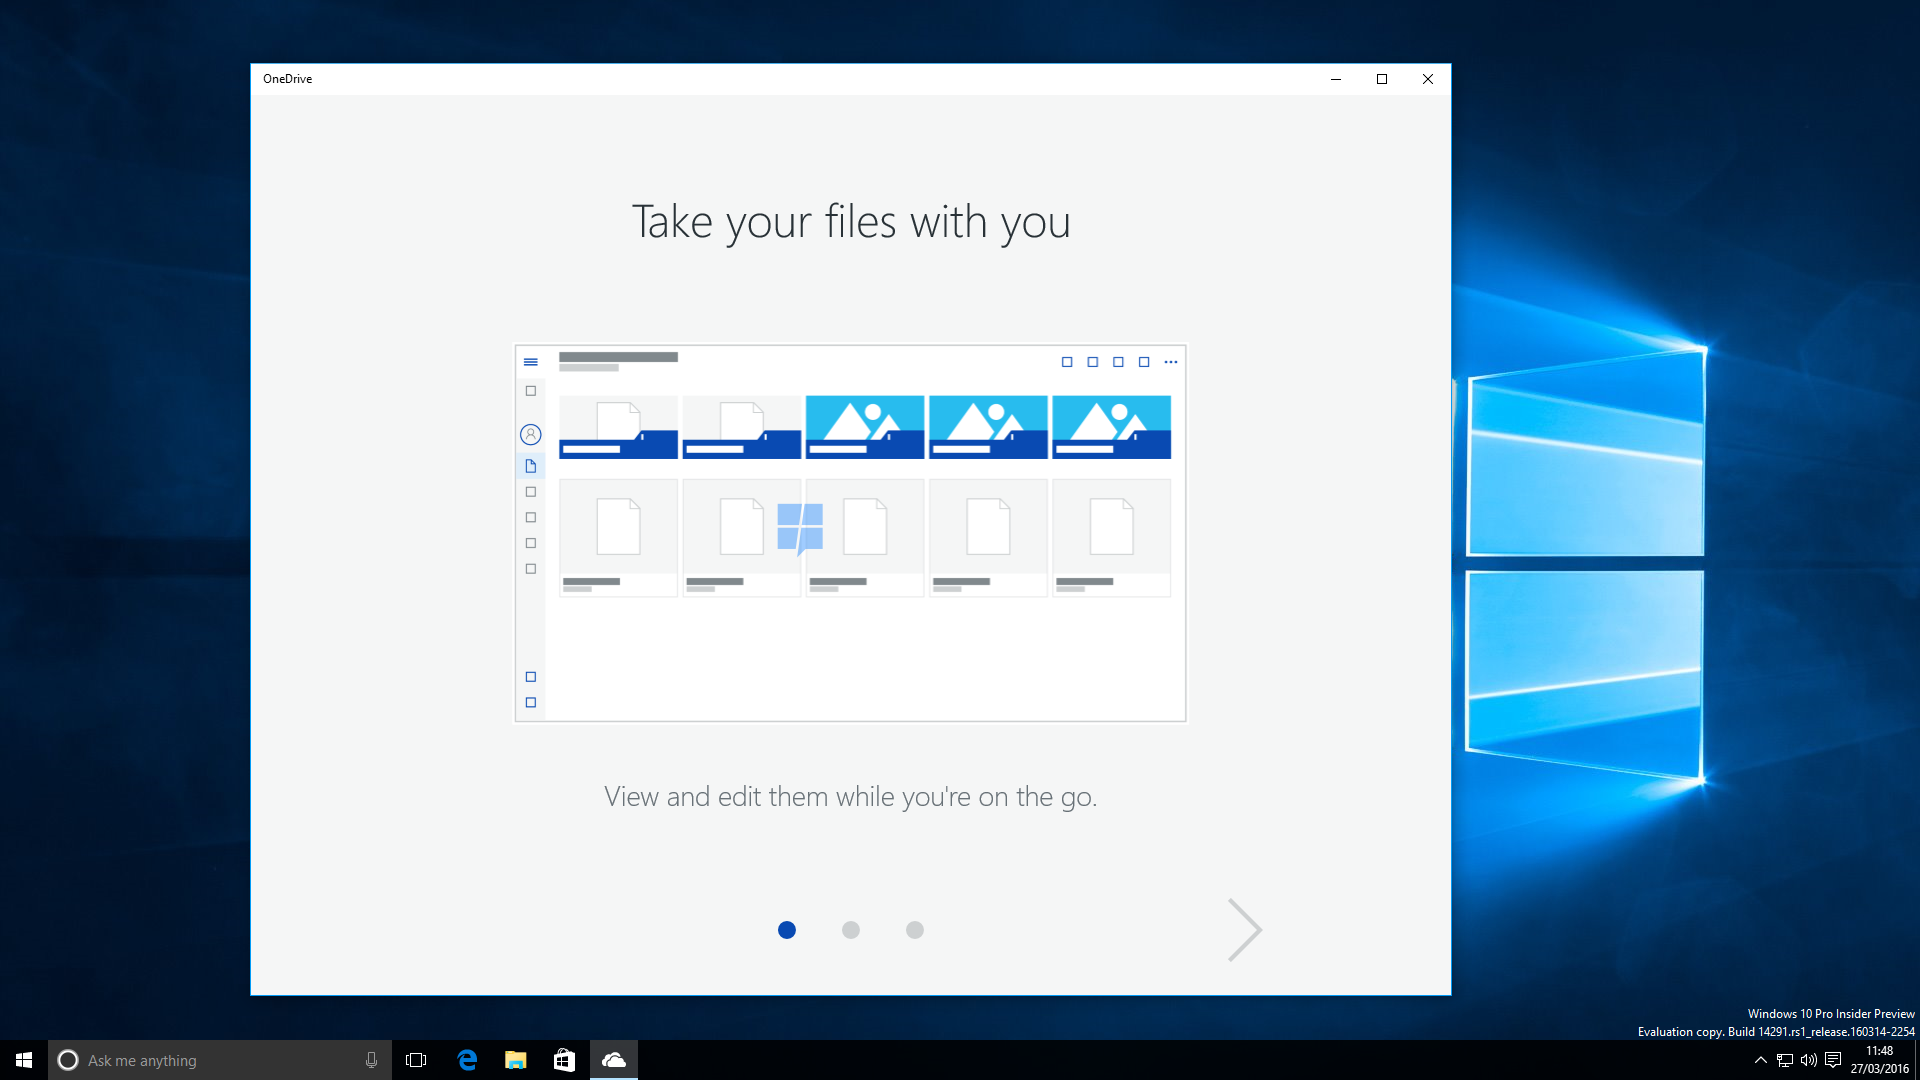 Exclusive: First look at OneDrive's UWP app in Windows 10